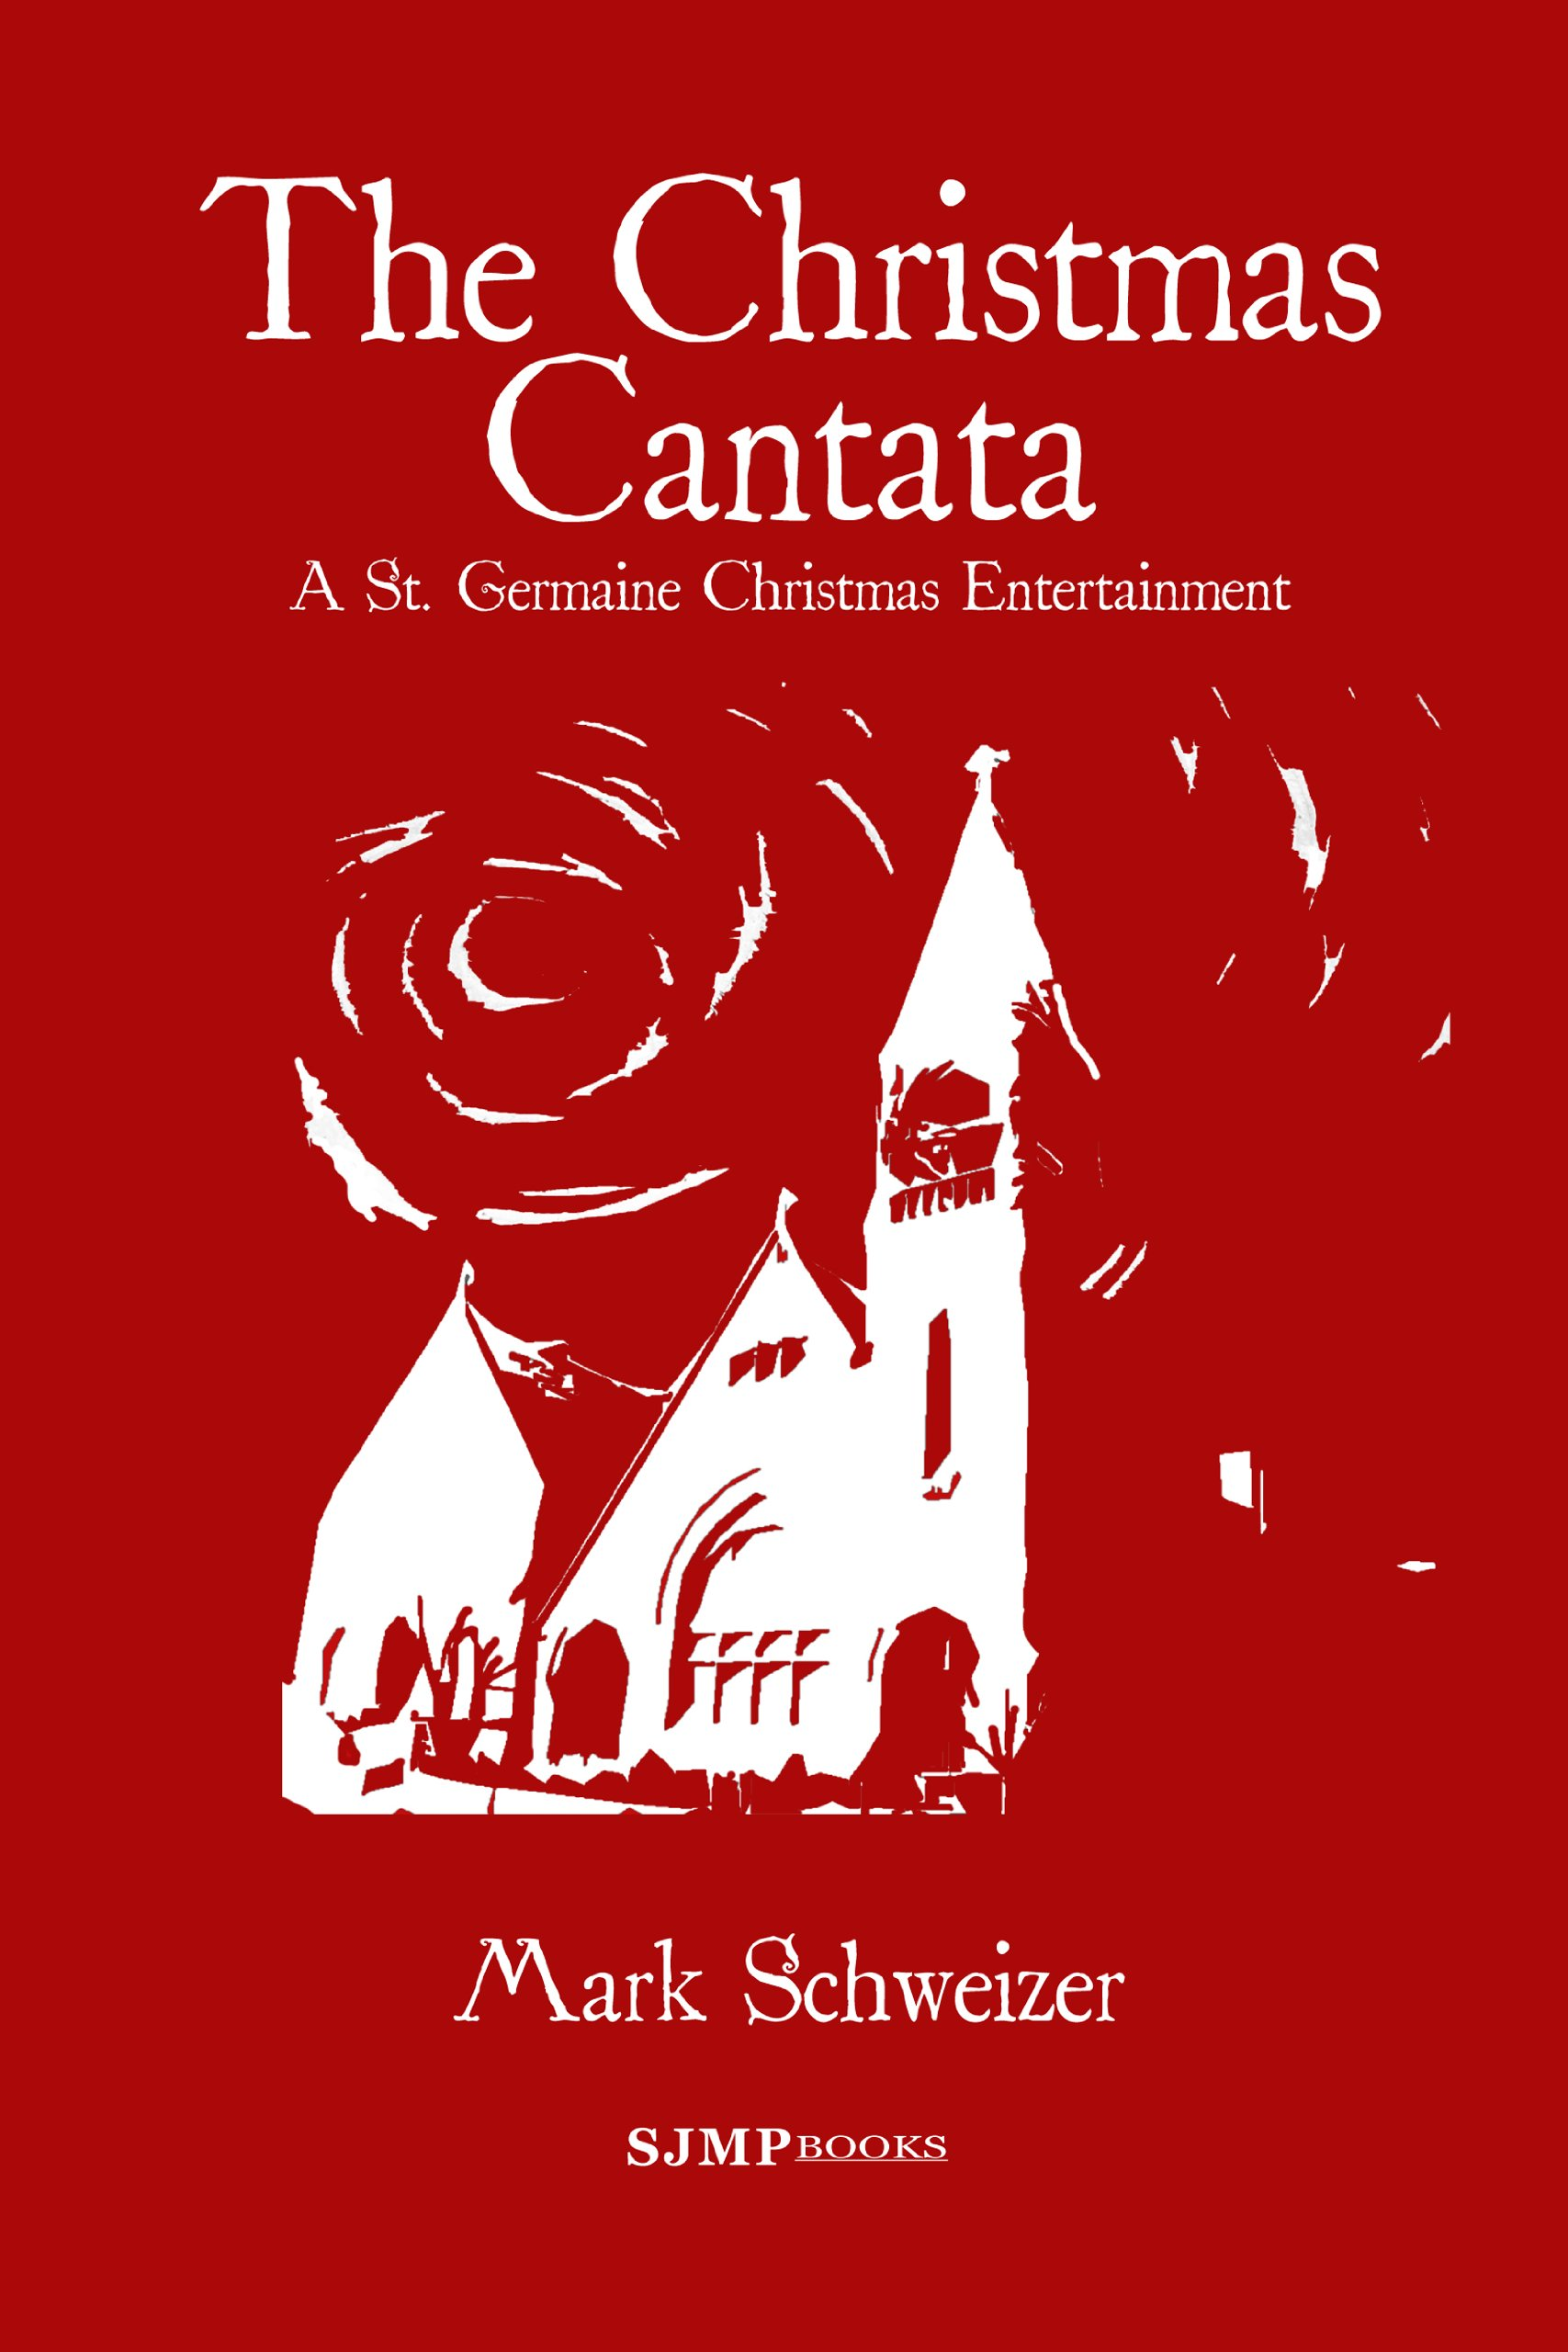 the christmas cantata mark schweizer 9780984484690 amazoncom books - What Is A Christmas Cantata